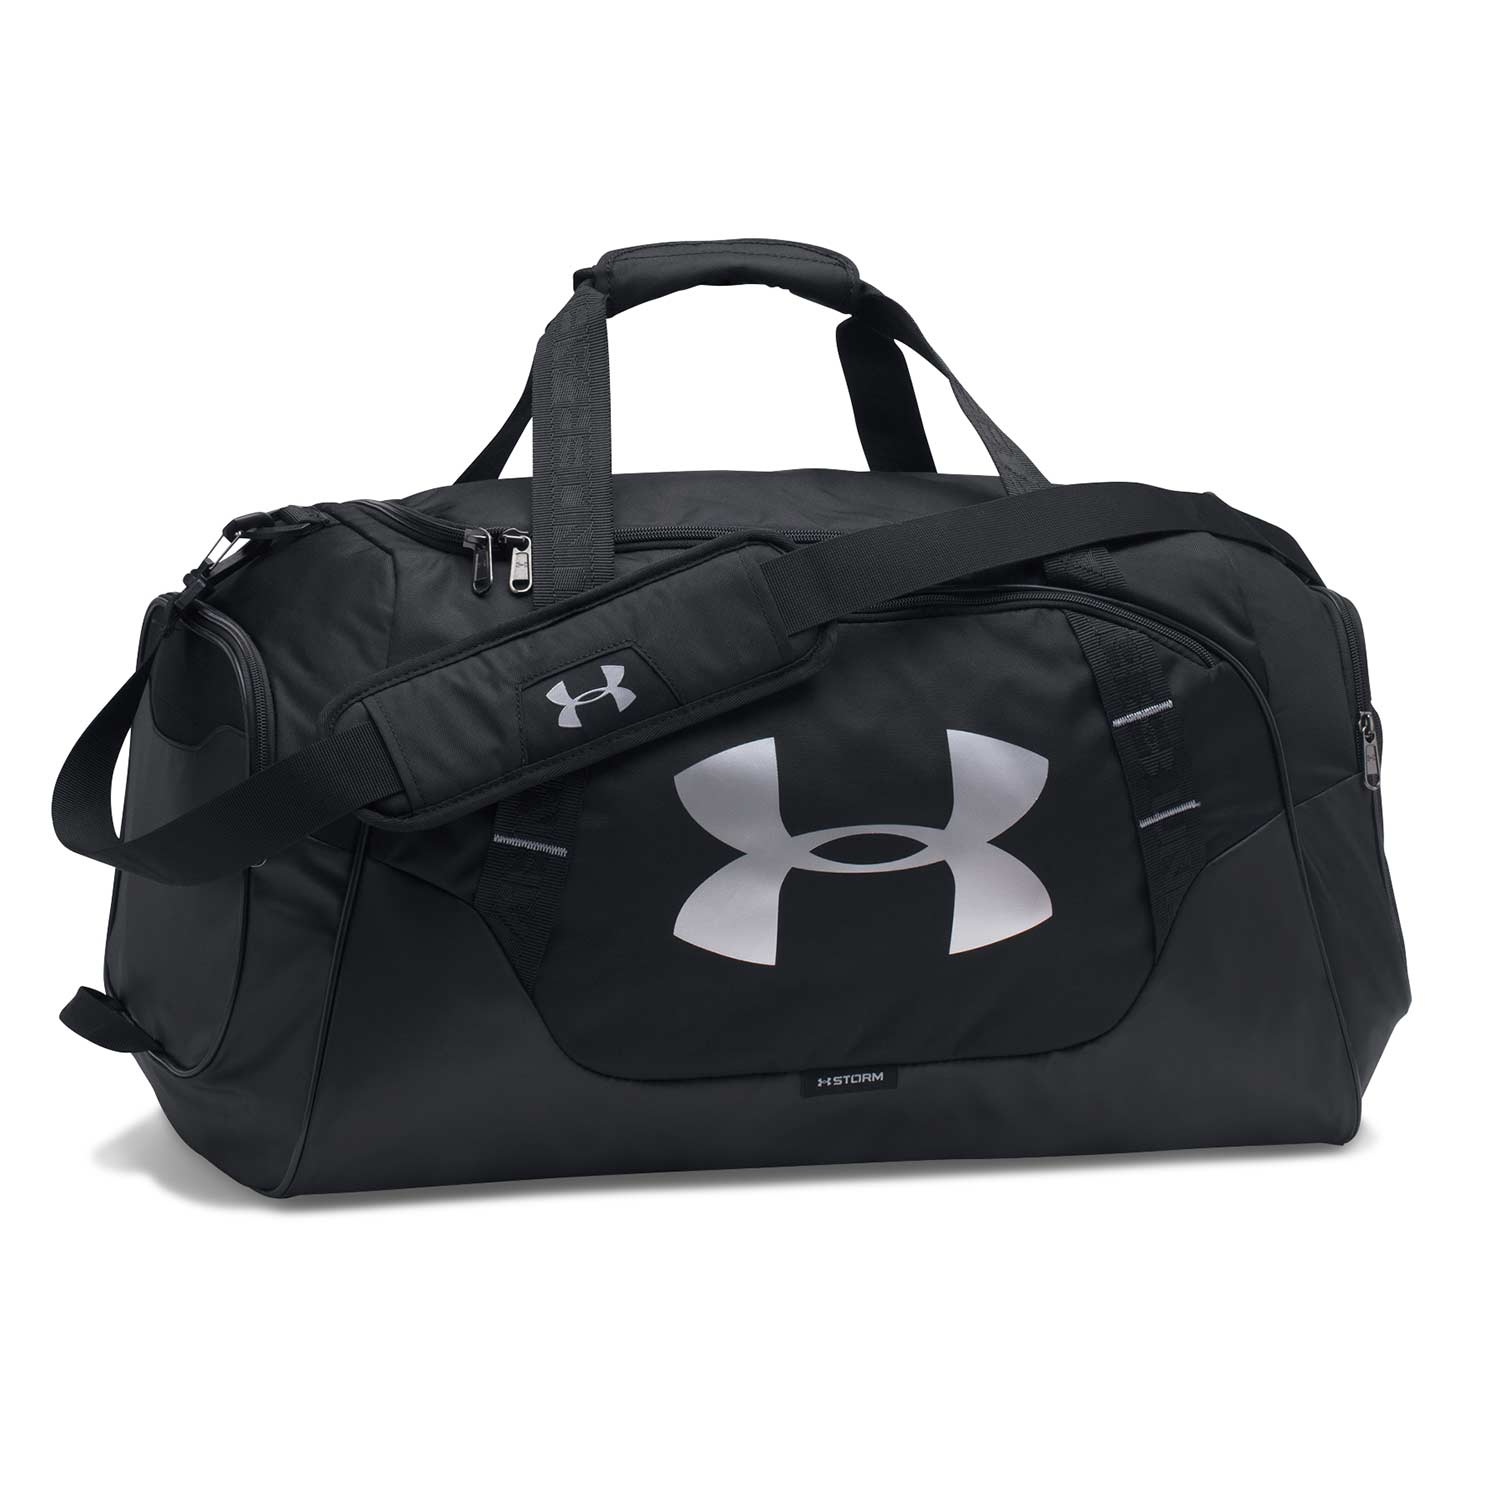 Under Armour	Undeniable Duffle Bag 3.0